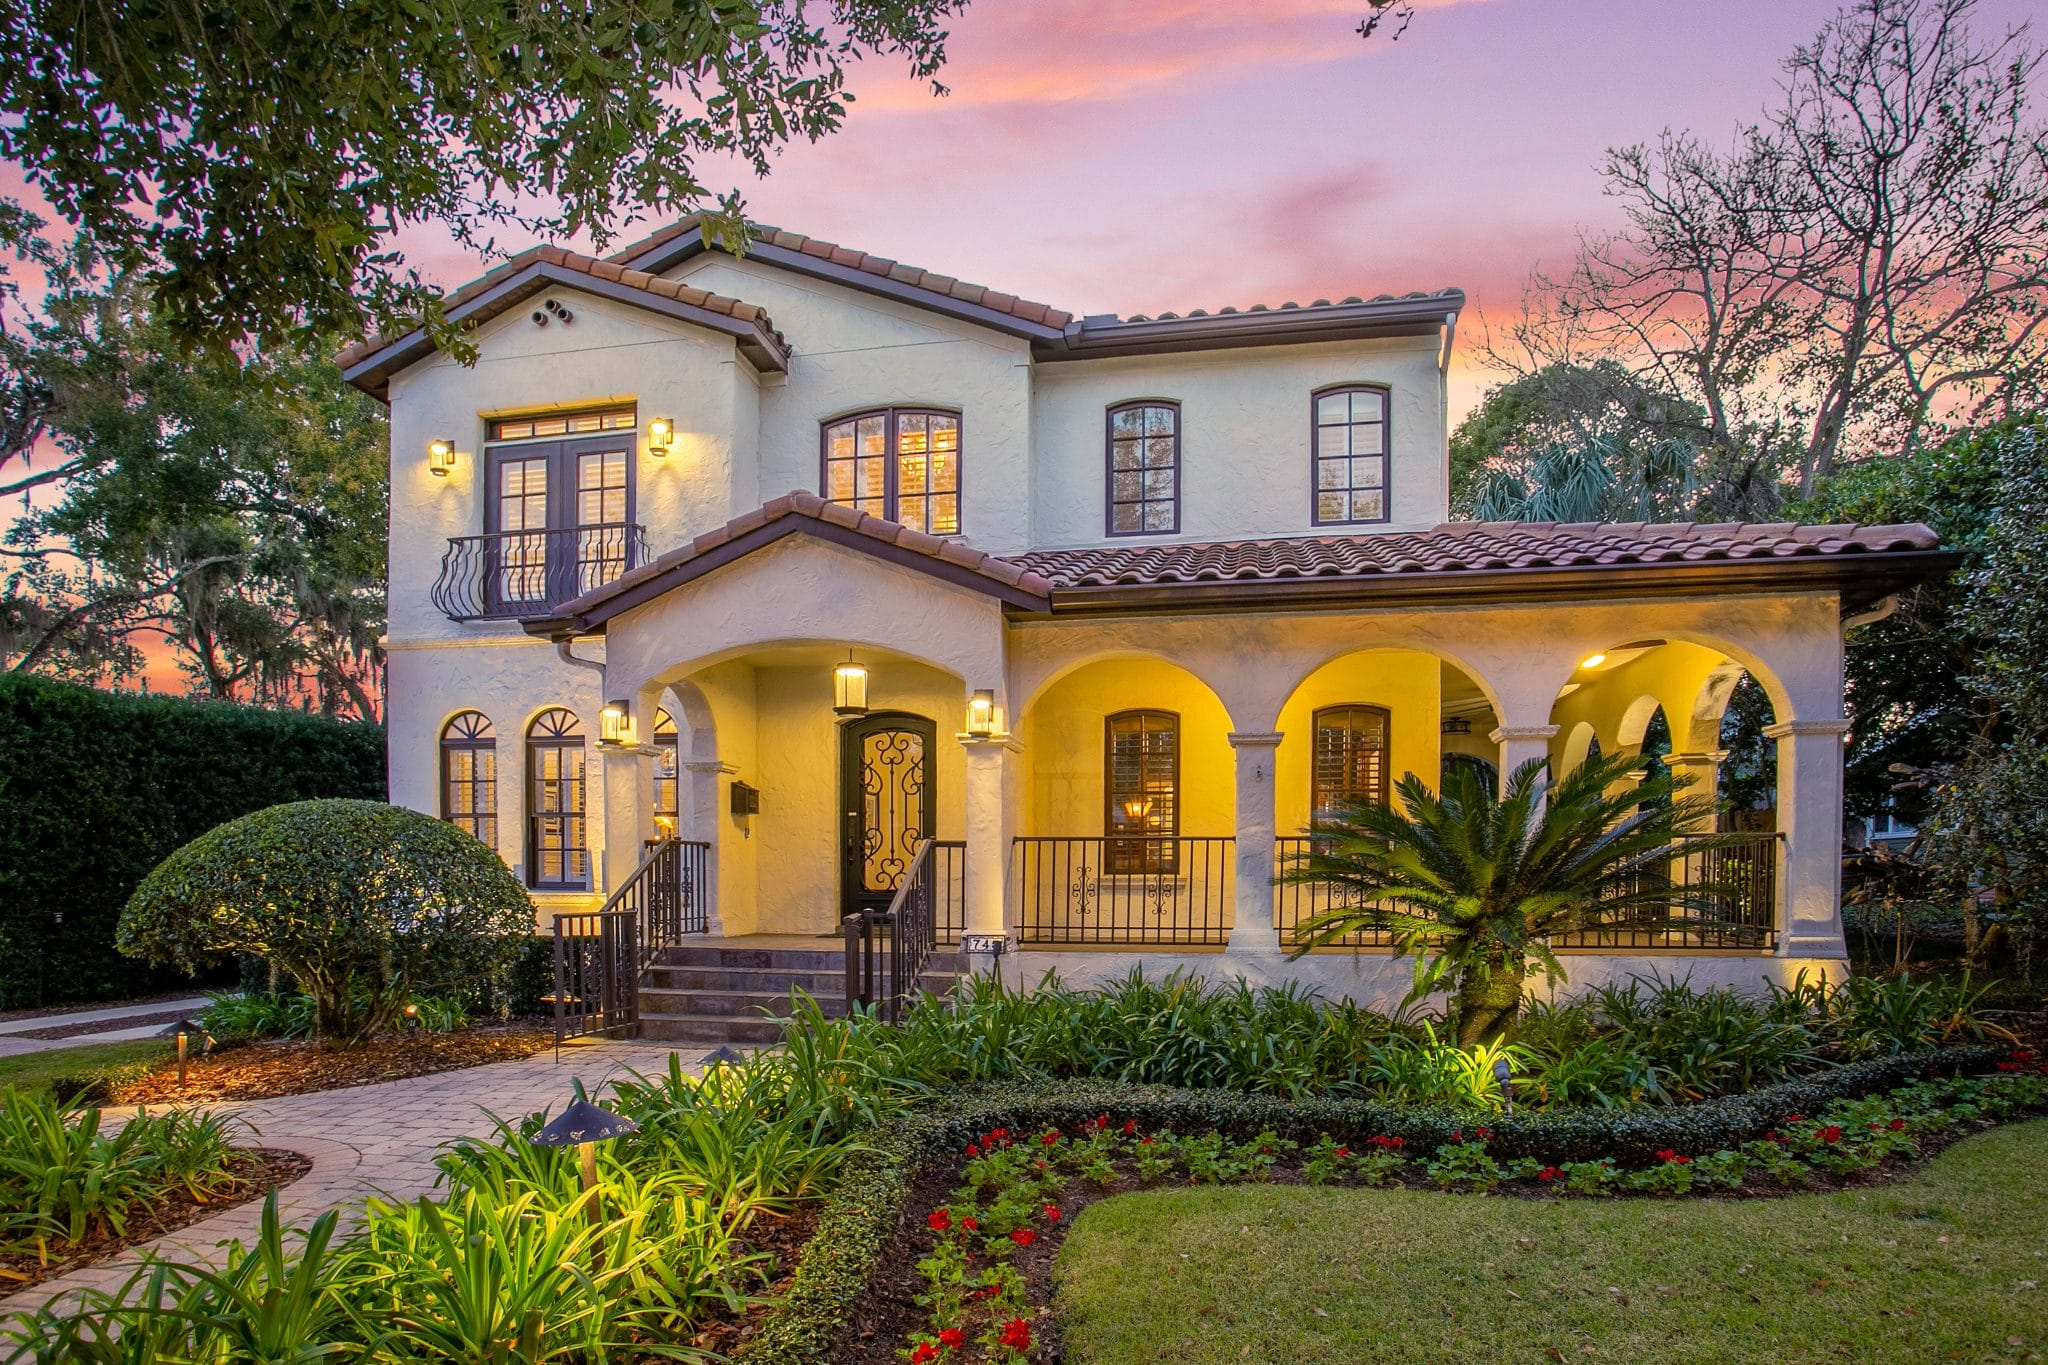 Twilight shot of a home's stunning curb appeal